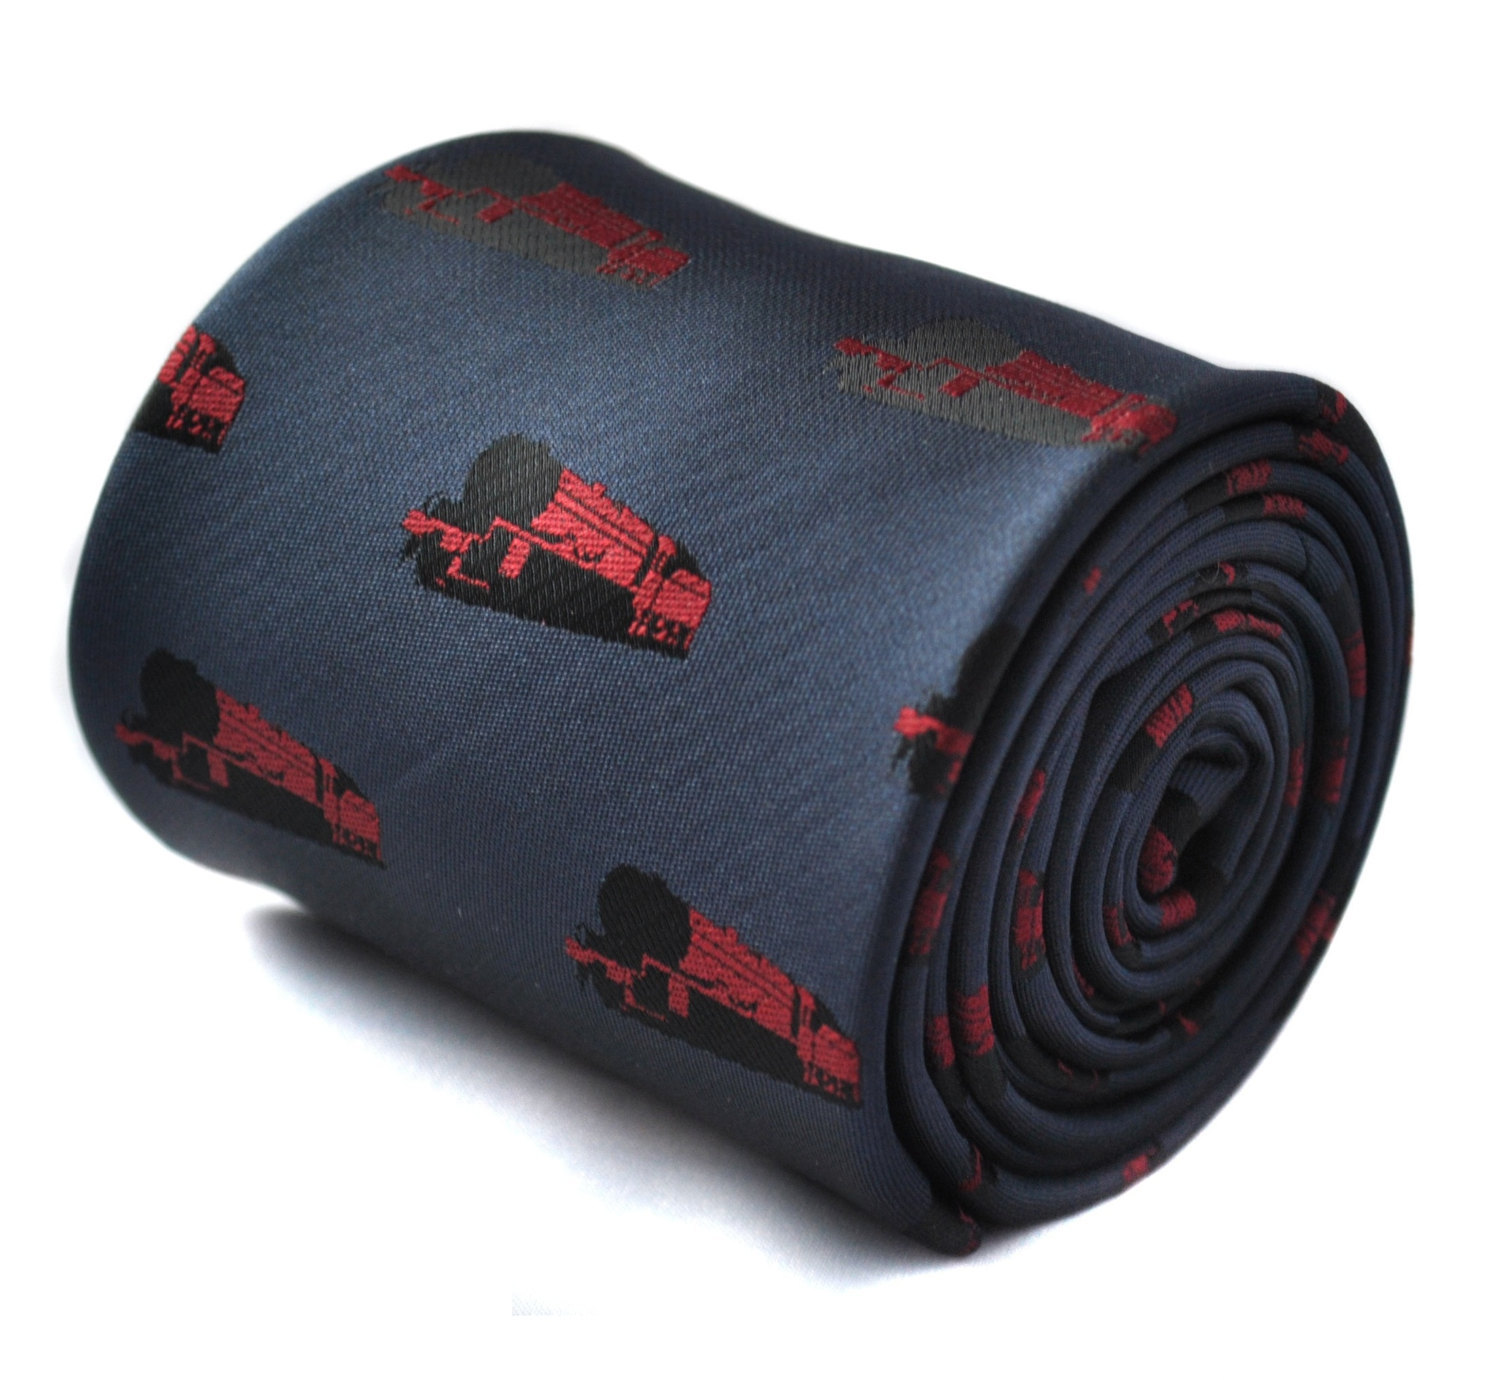 navy tie with steam engine train locomotive embroidered design with signature fl